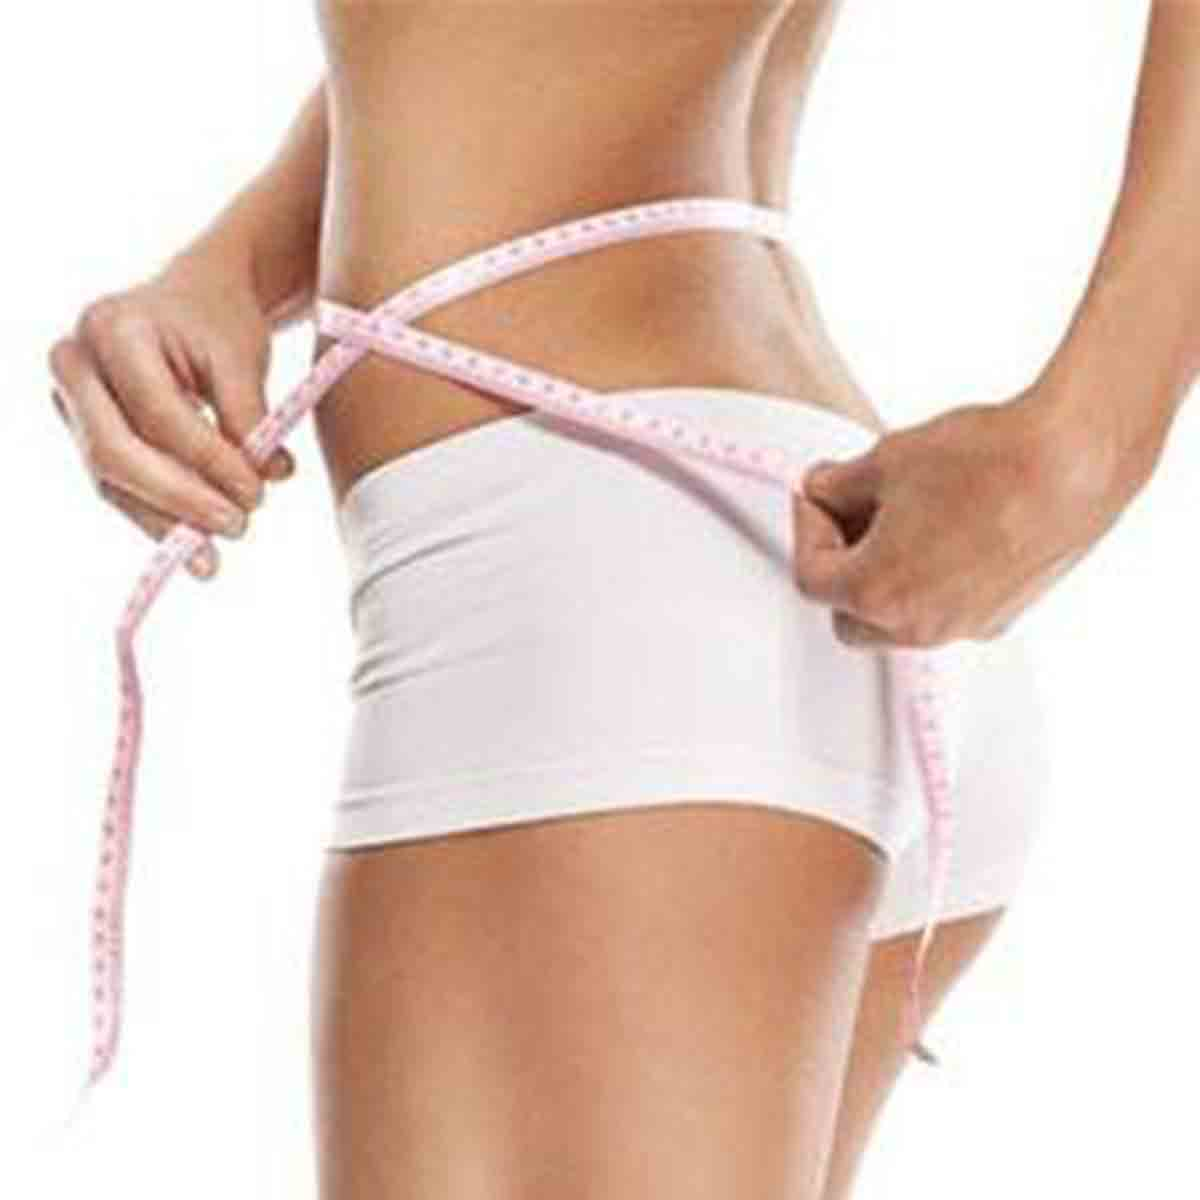 The Health Benefits Of Glucomannan - Helps You Lose Weight